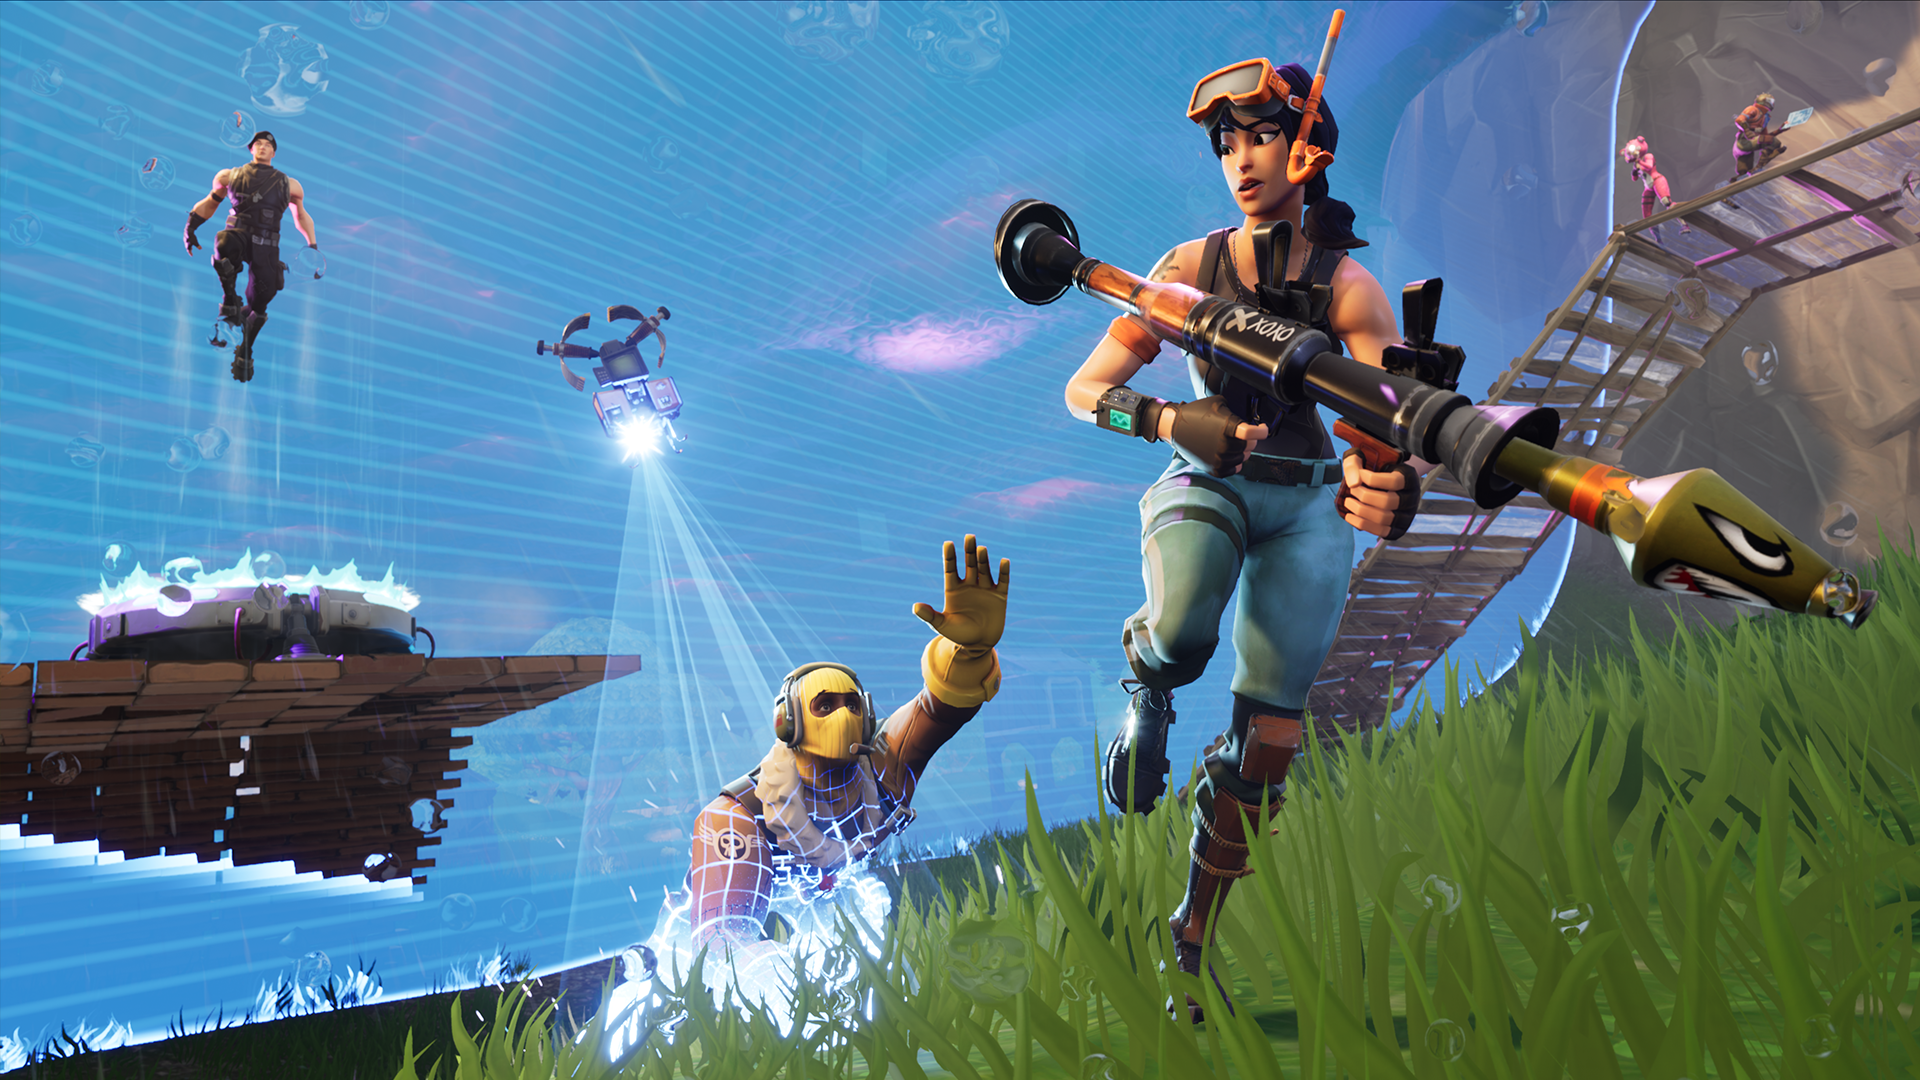 Fortnite Becomes Biggest Free To Play Game Ever While Far Cry 5